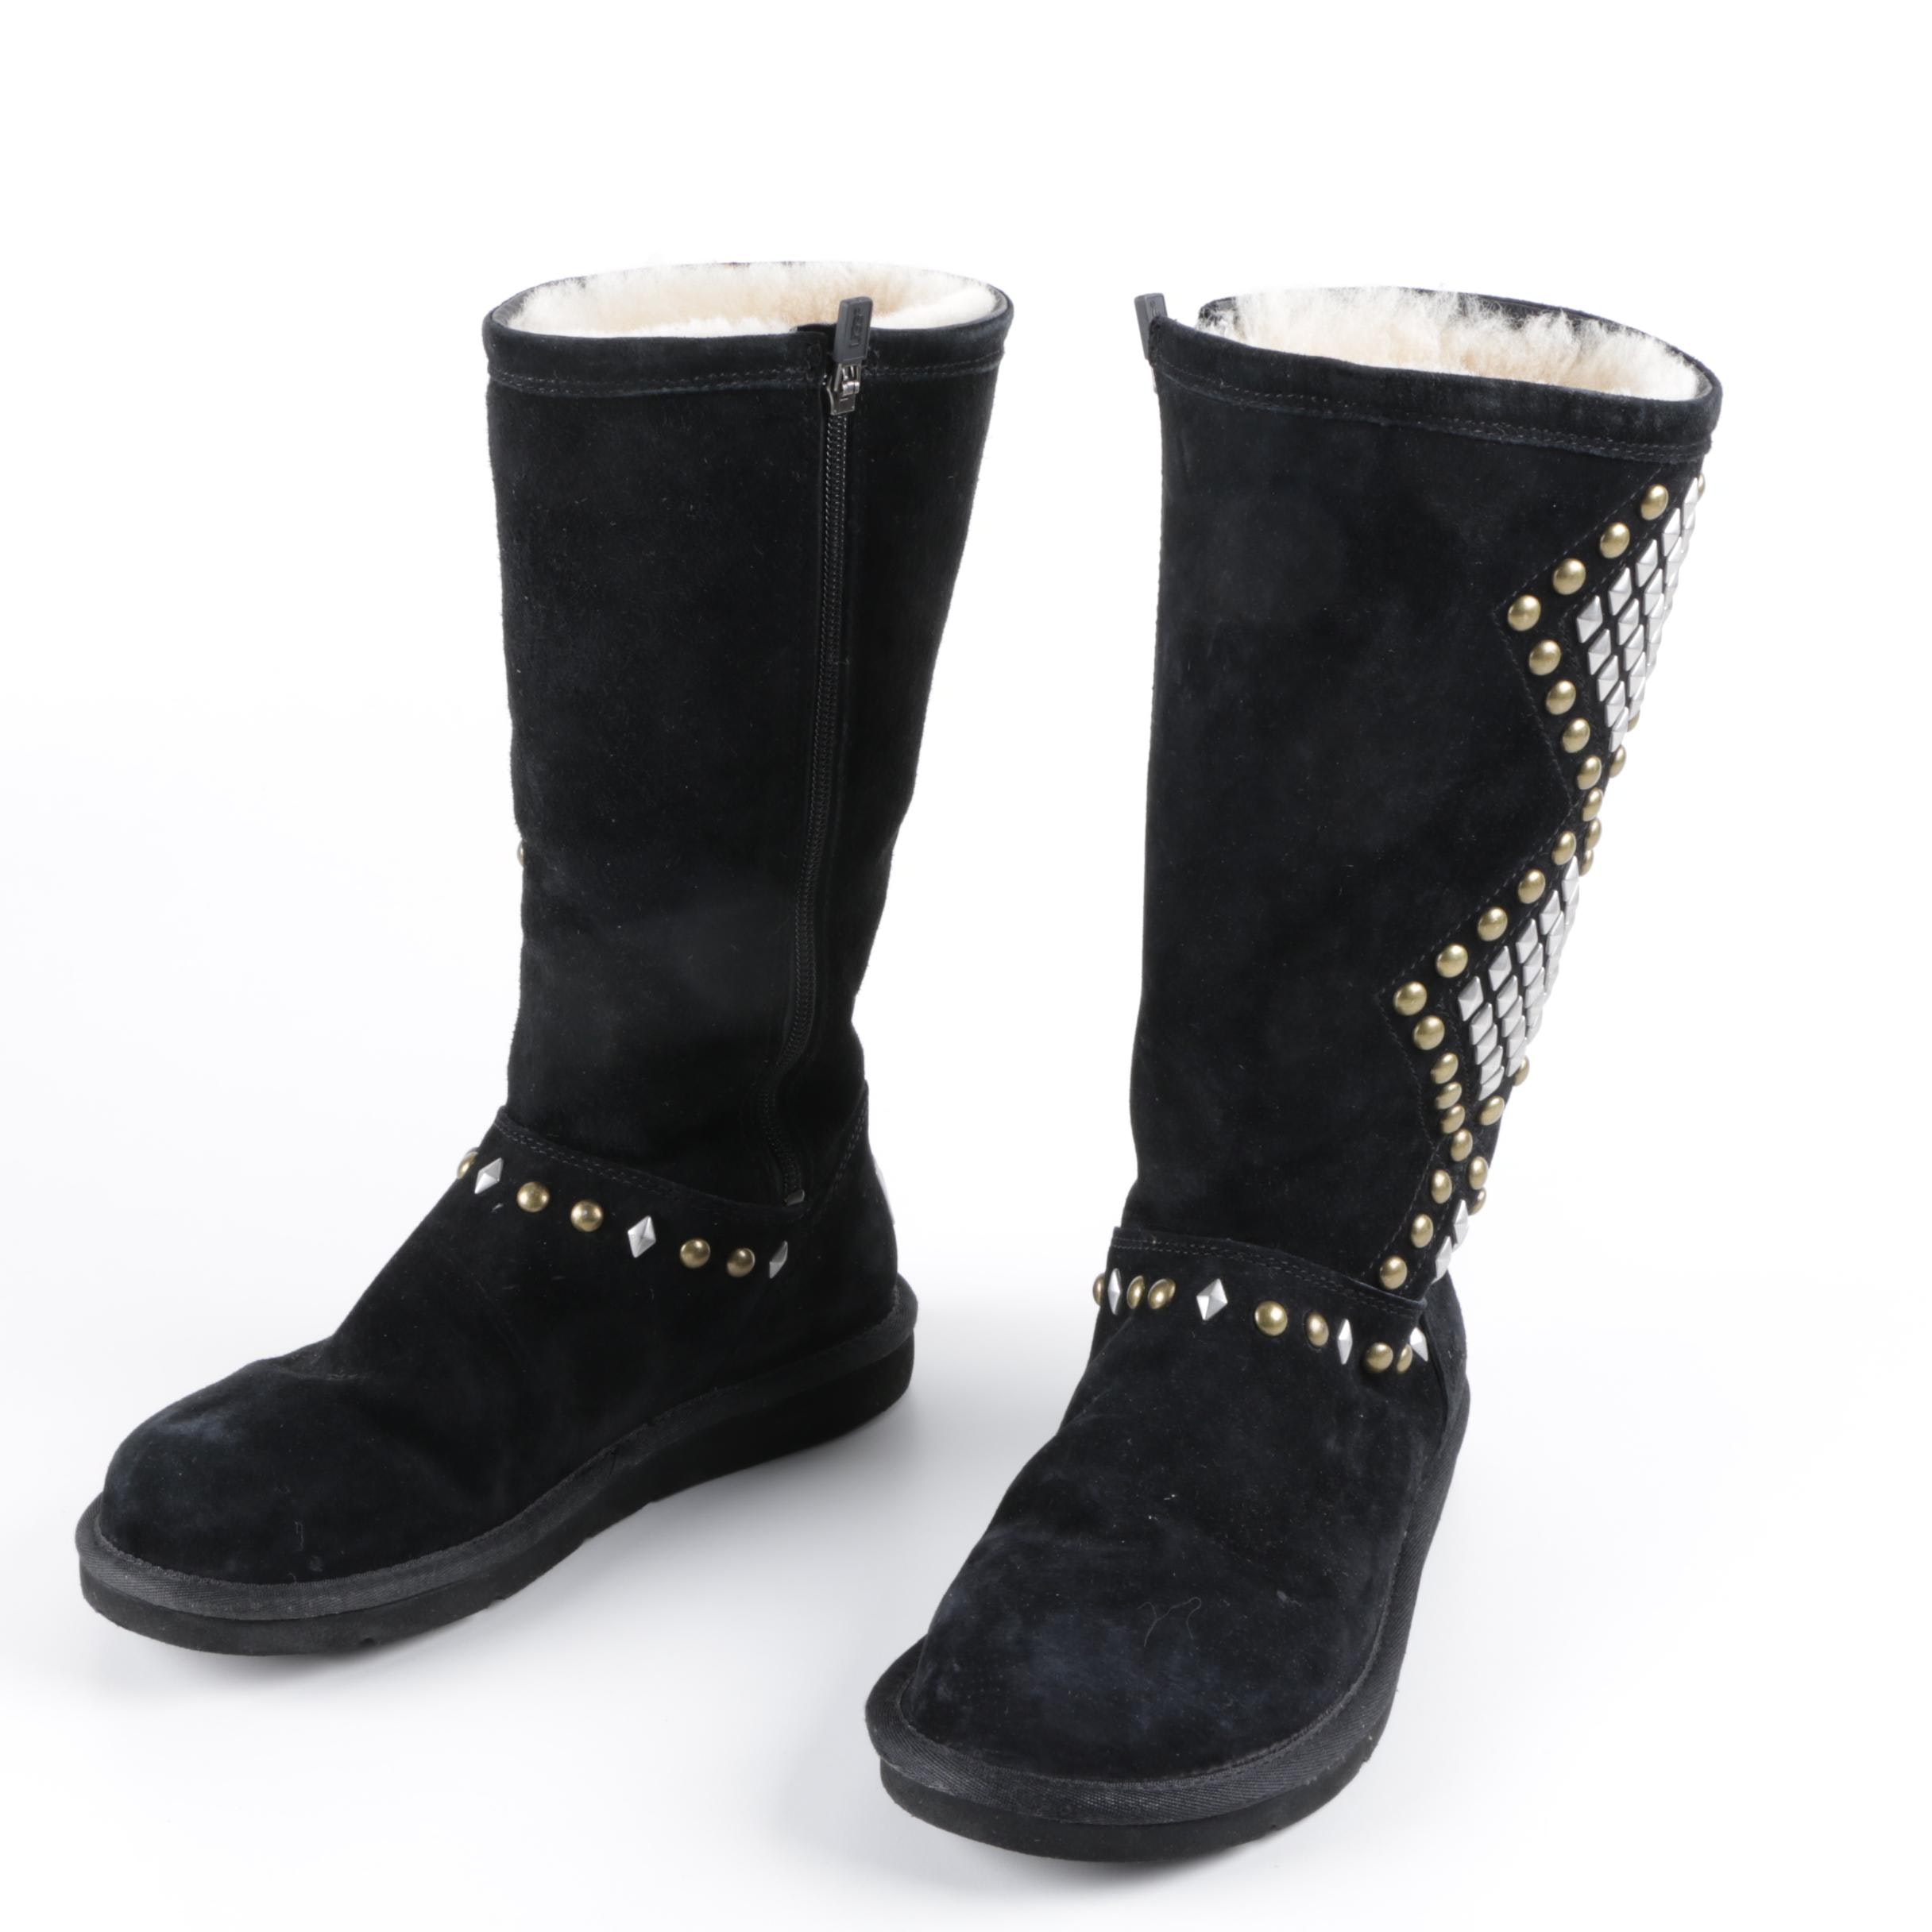 Women's Ugg Australia Studded Black Suede Boots with Sheepskin Lining